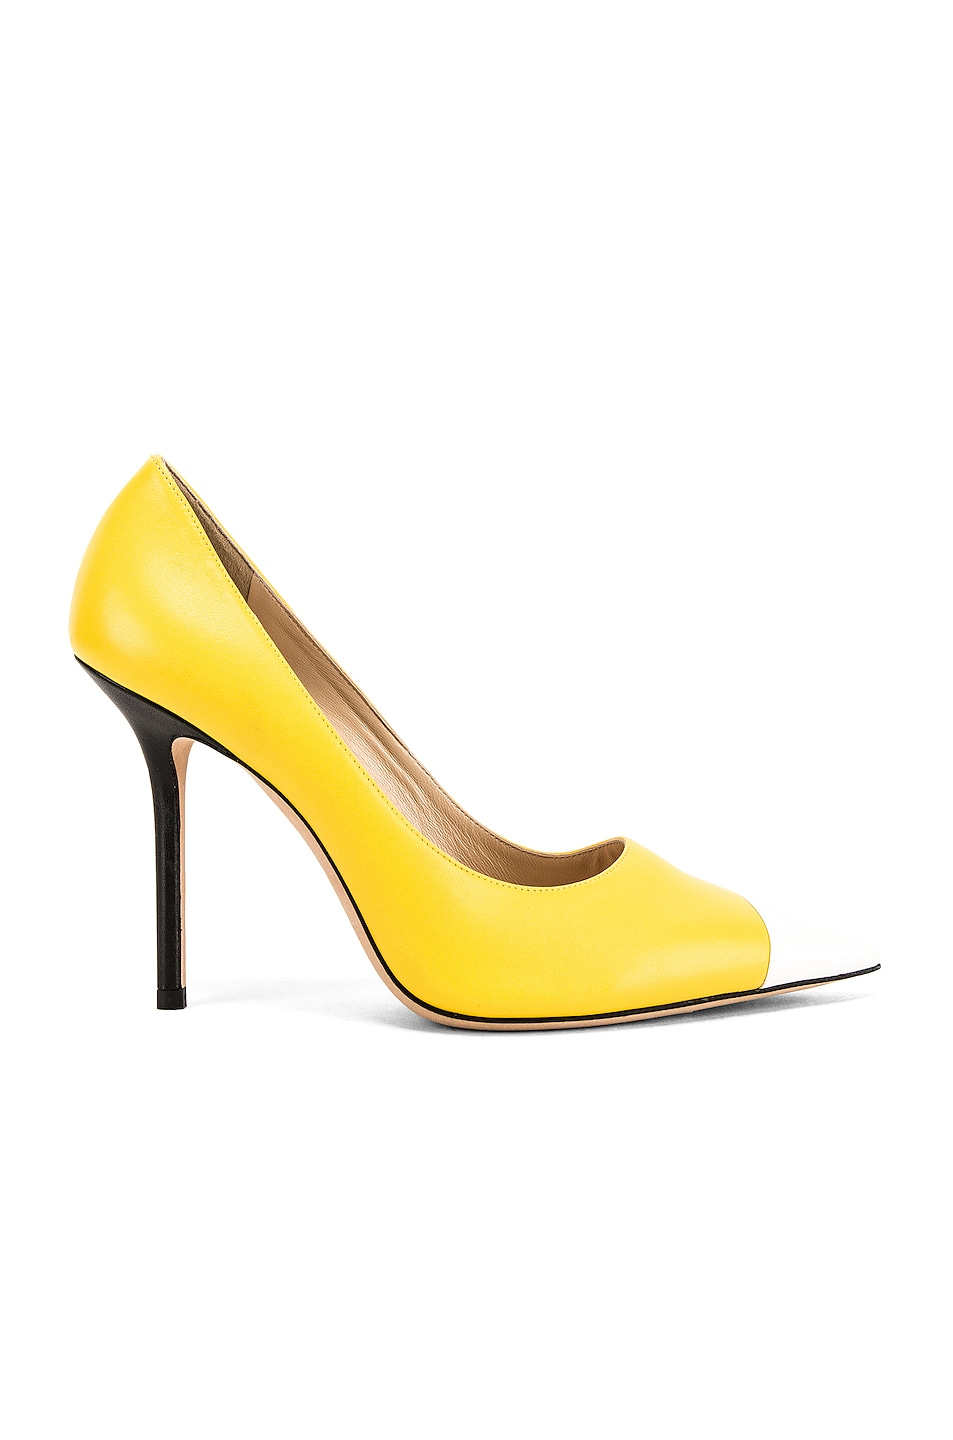 Image 2 of Jimmy Choo Love 100 Heel in Black, White & Fluo Yellow